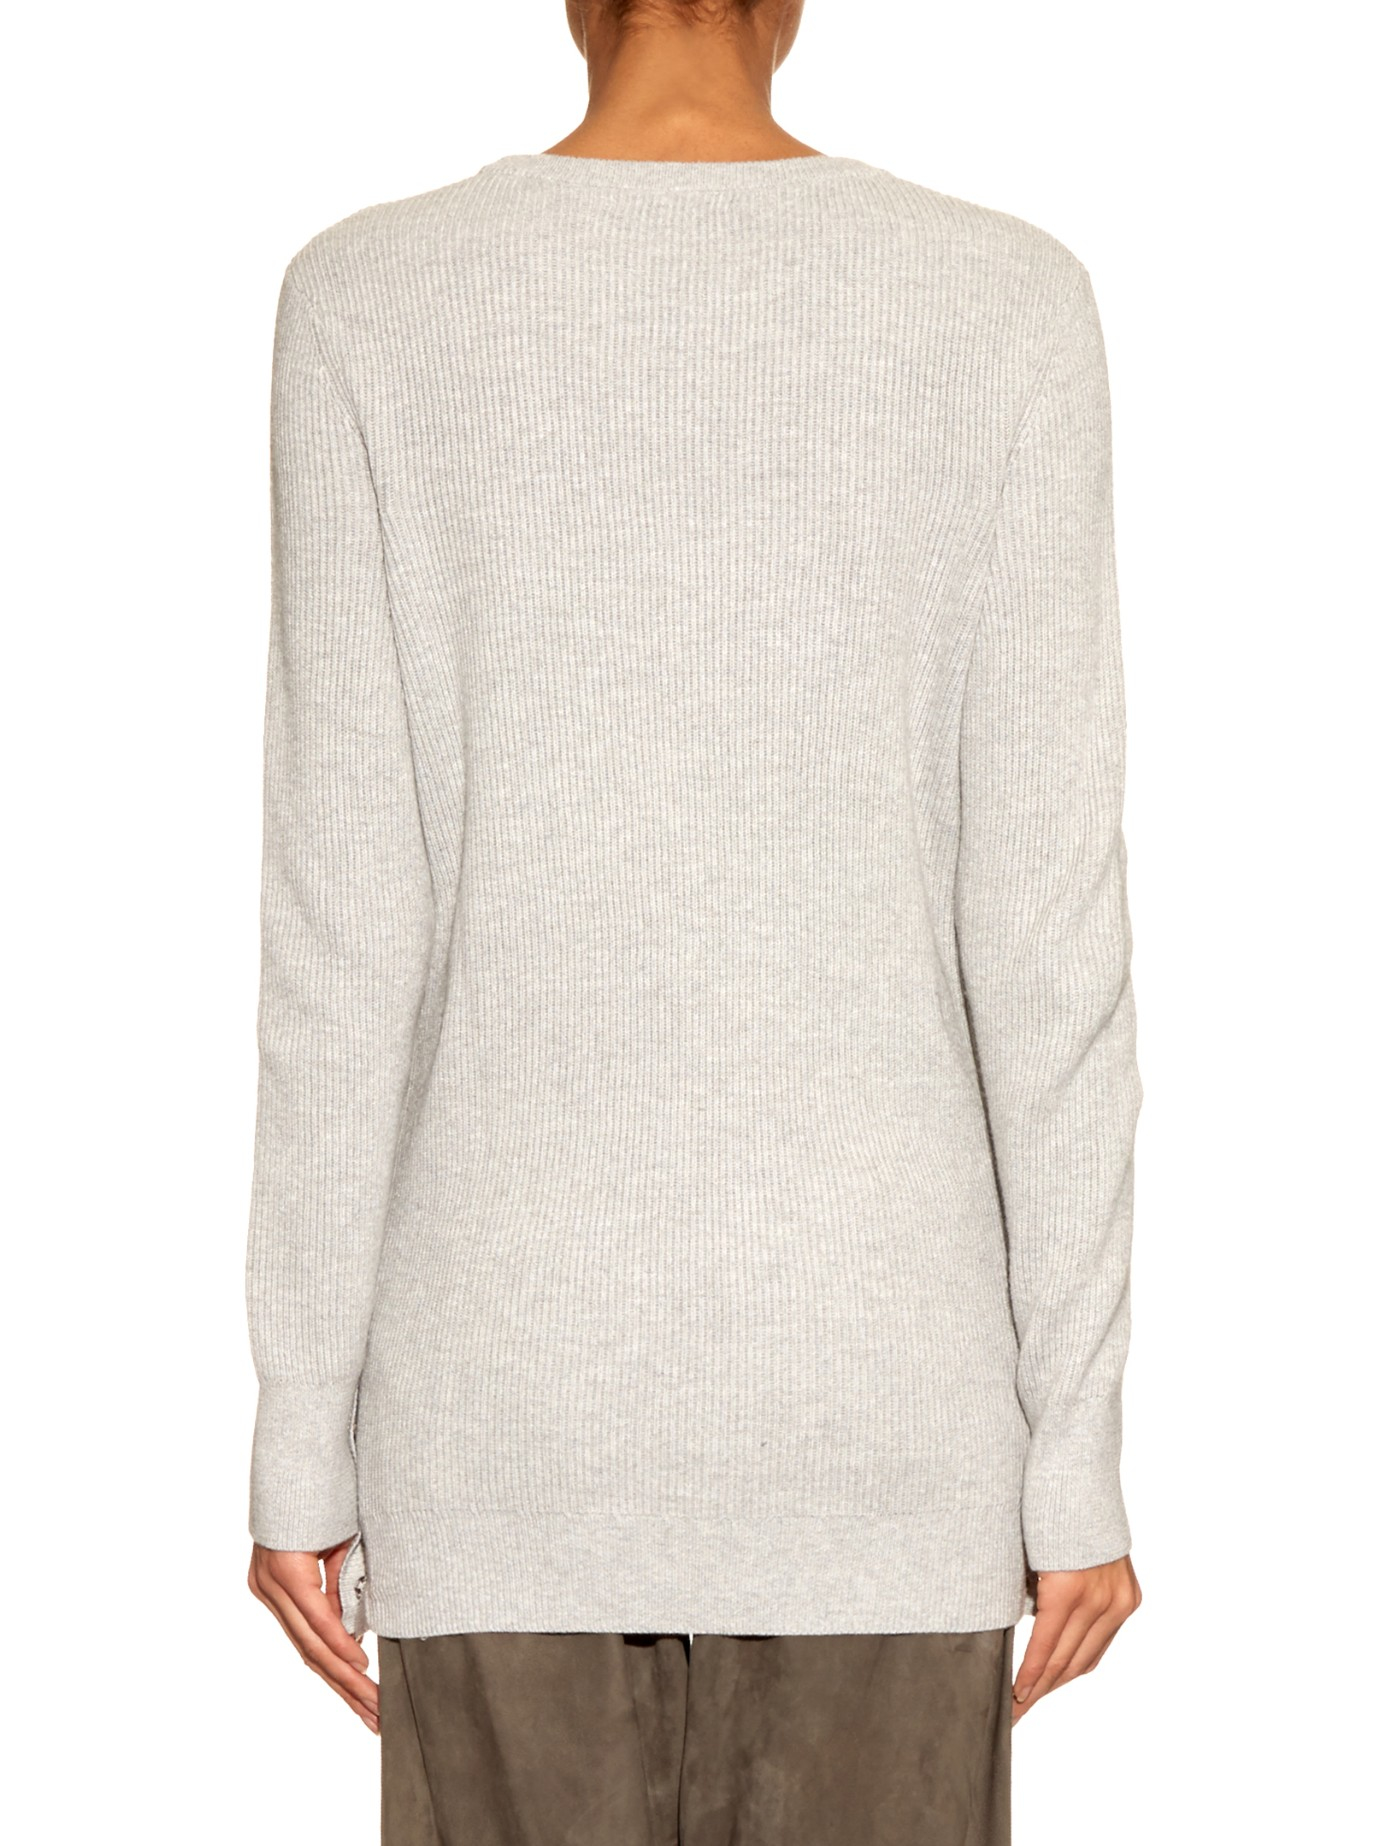 Equipment Rei Cashmere And Cotton-blend Sweater in Gray | Lyst